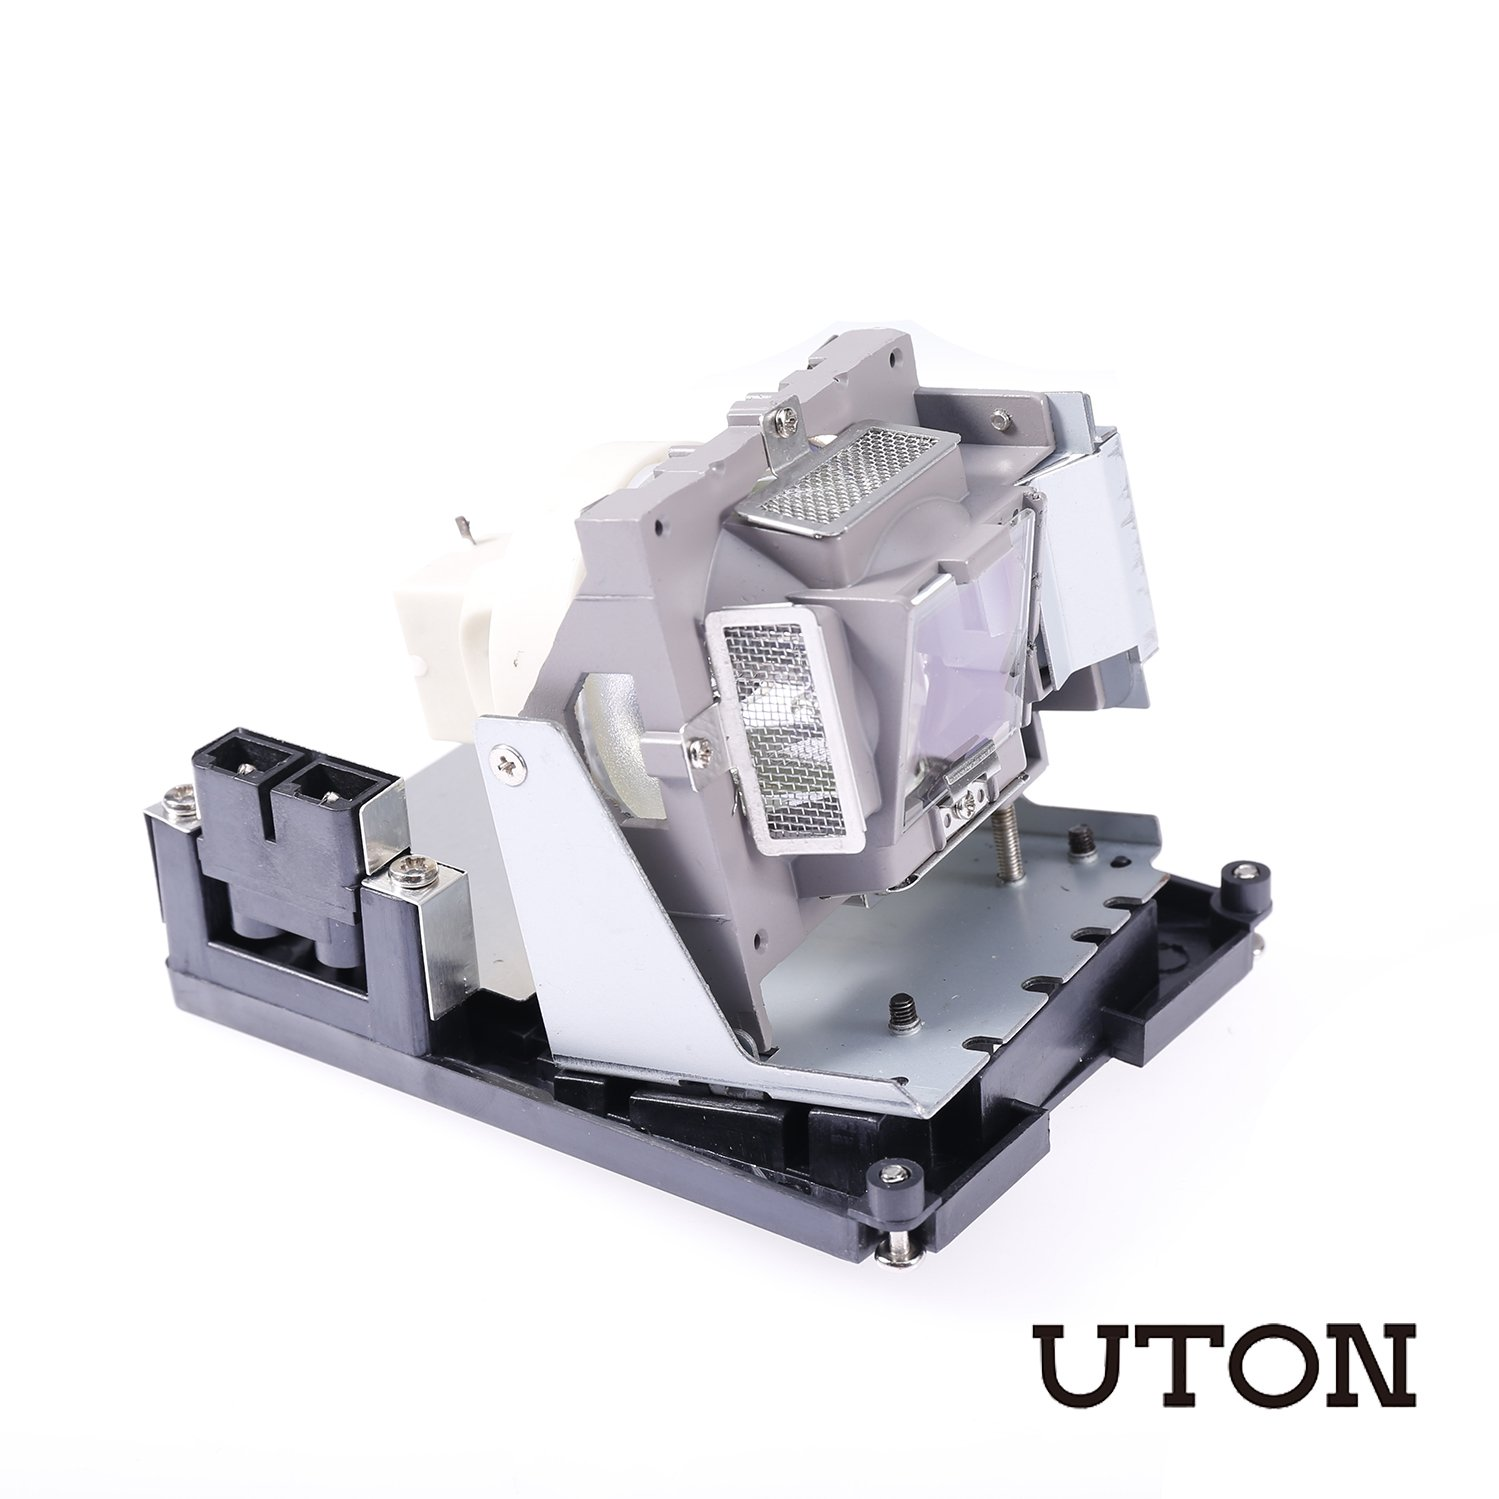 Uton Replacement Projector Lamp BL-FU310B for OPTOMA DH1017 EH500 X600 projector